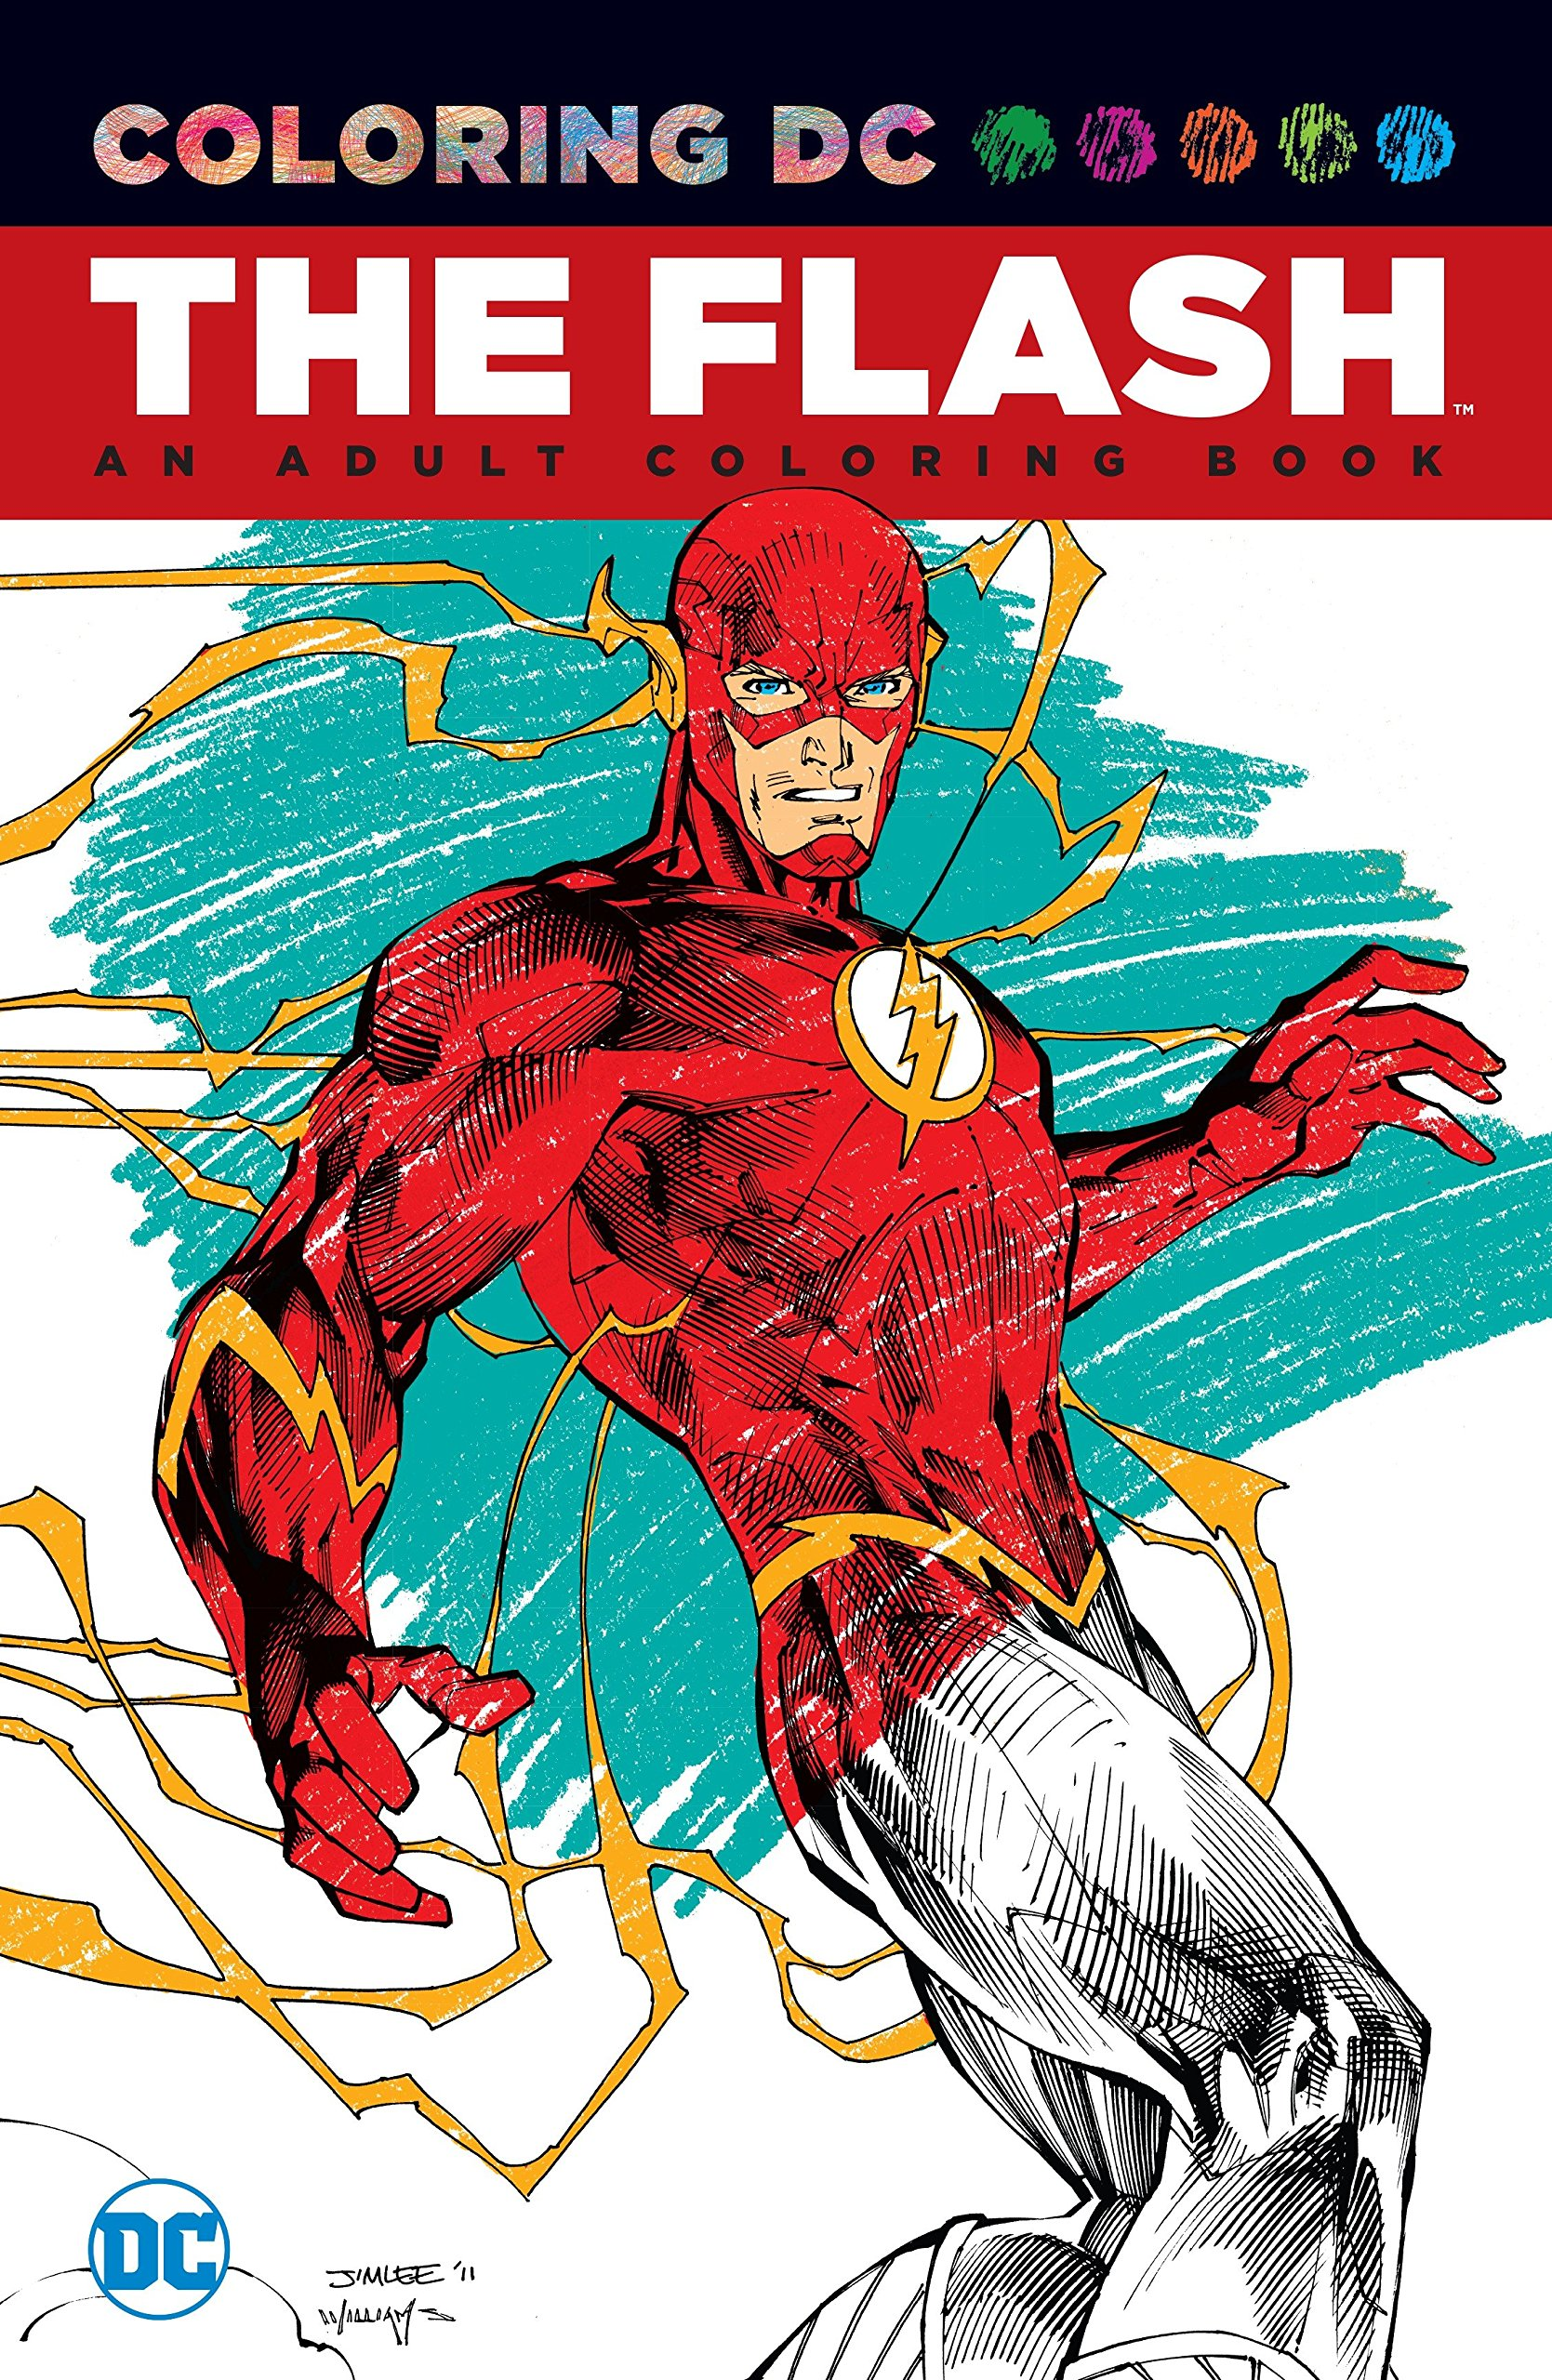 The Flash: An Adult Coloring Book (Coloring DC)